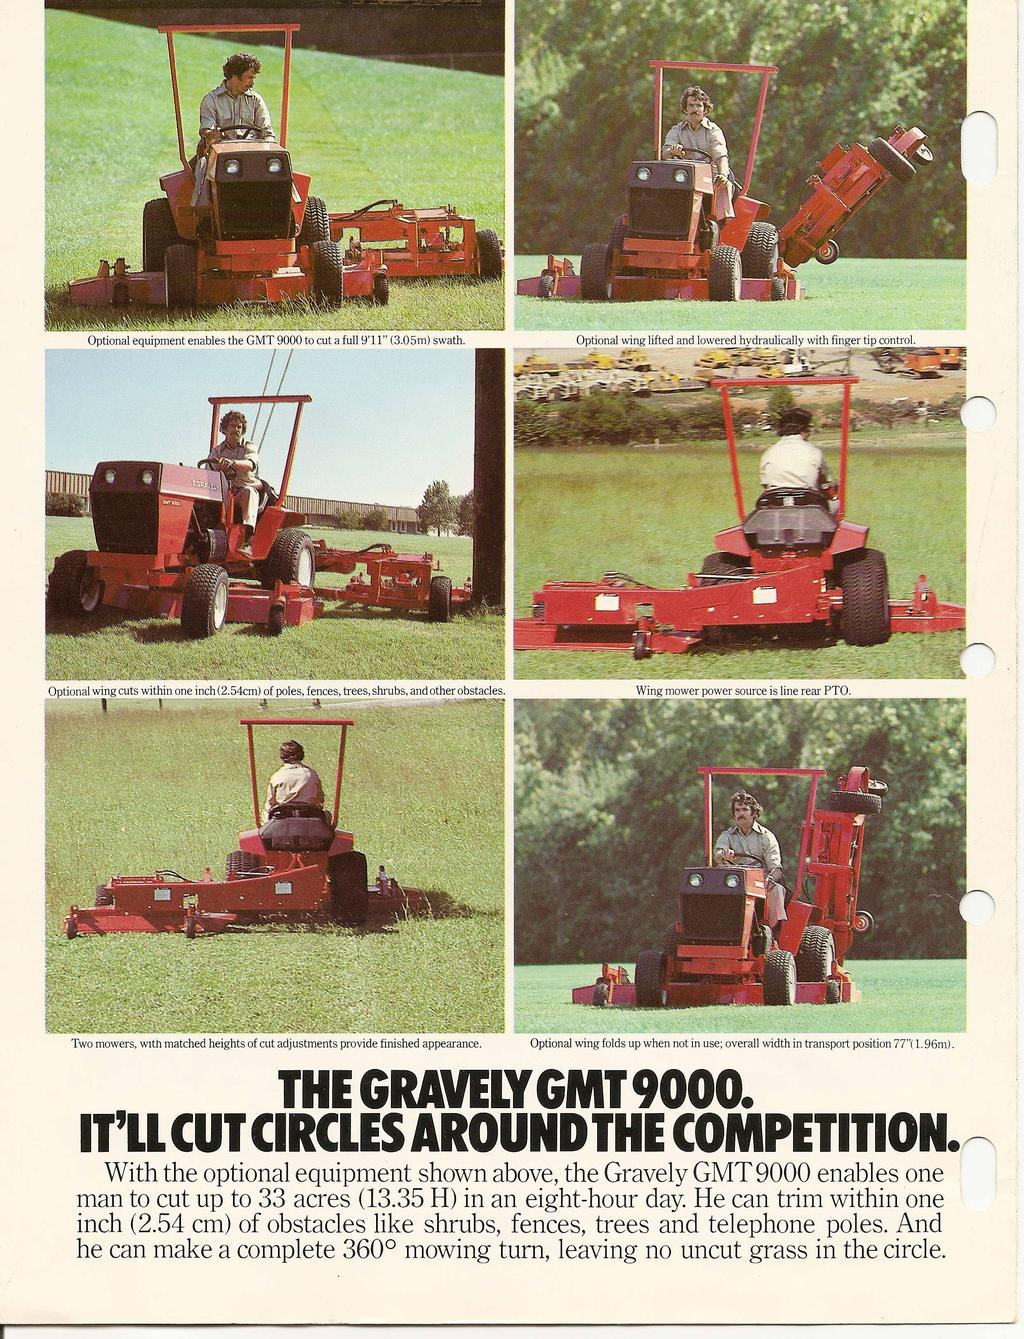 THE GRAVELY GMT'000. IT'll CUT CIRCLESAROUND THE COMPETITION. With the optional equipment shown above, the Gravely GMT 9000 enables one man to cut up to 33 acres (13.